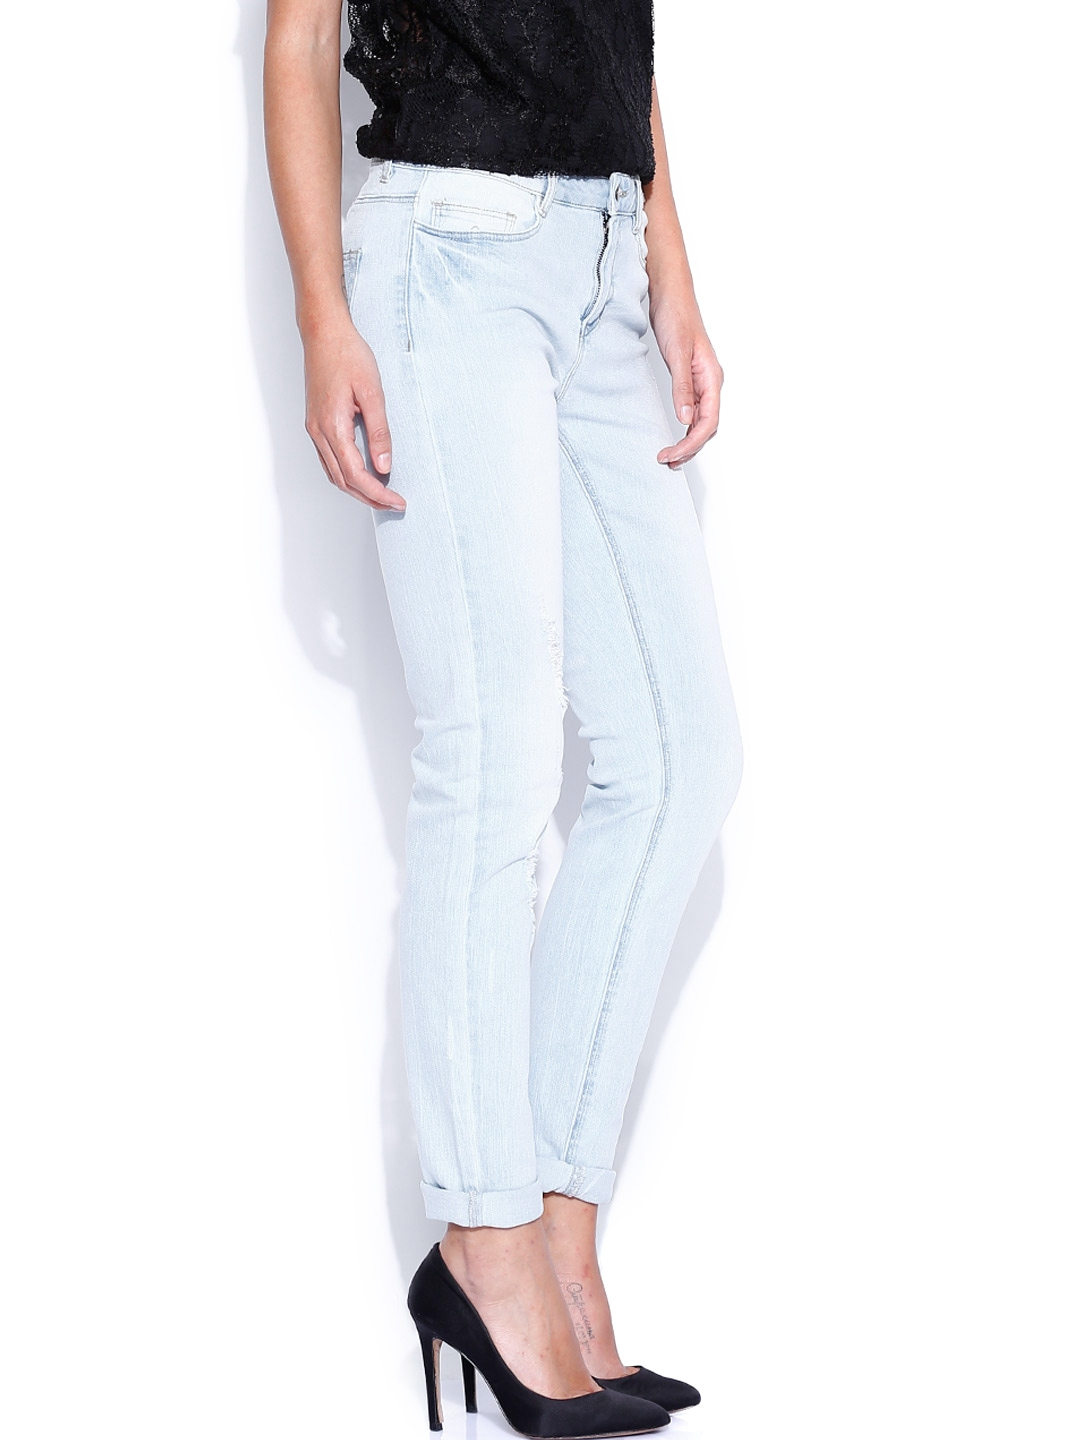 myntra vero moda light blue jeans 683526 buy myntra vero moda jeans at best price online all. Black Bedroom Furniture Sets. Home Design Ideas